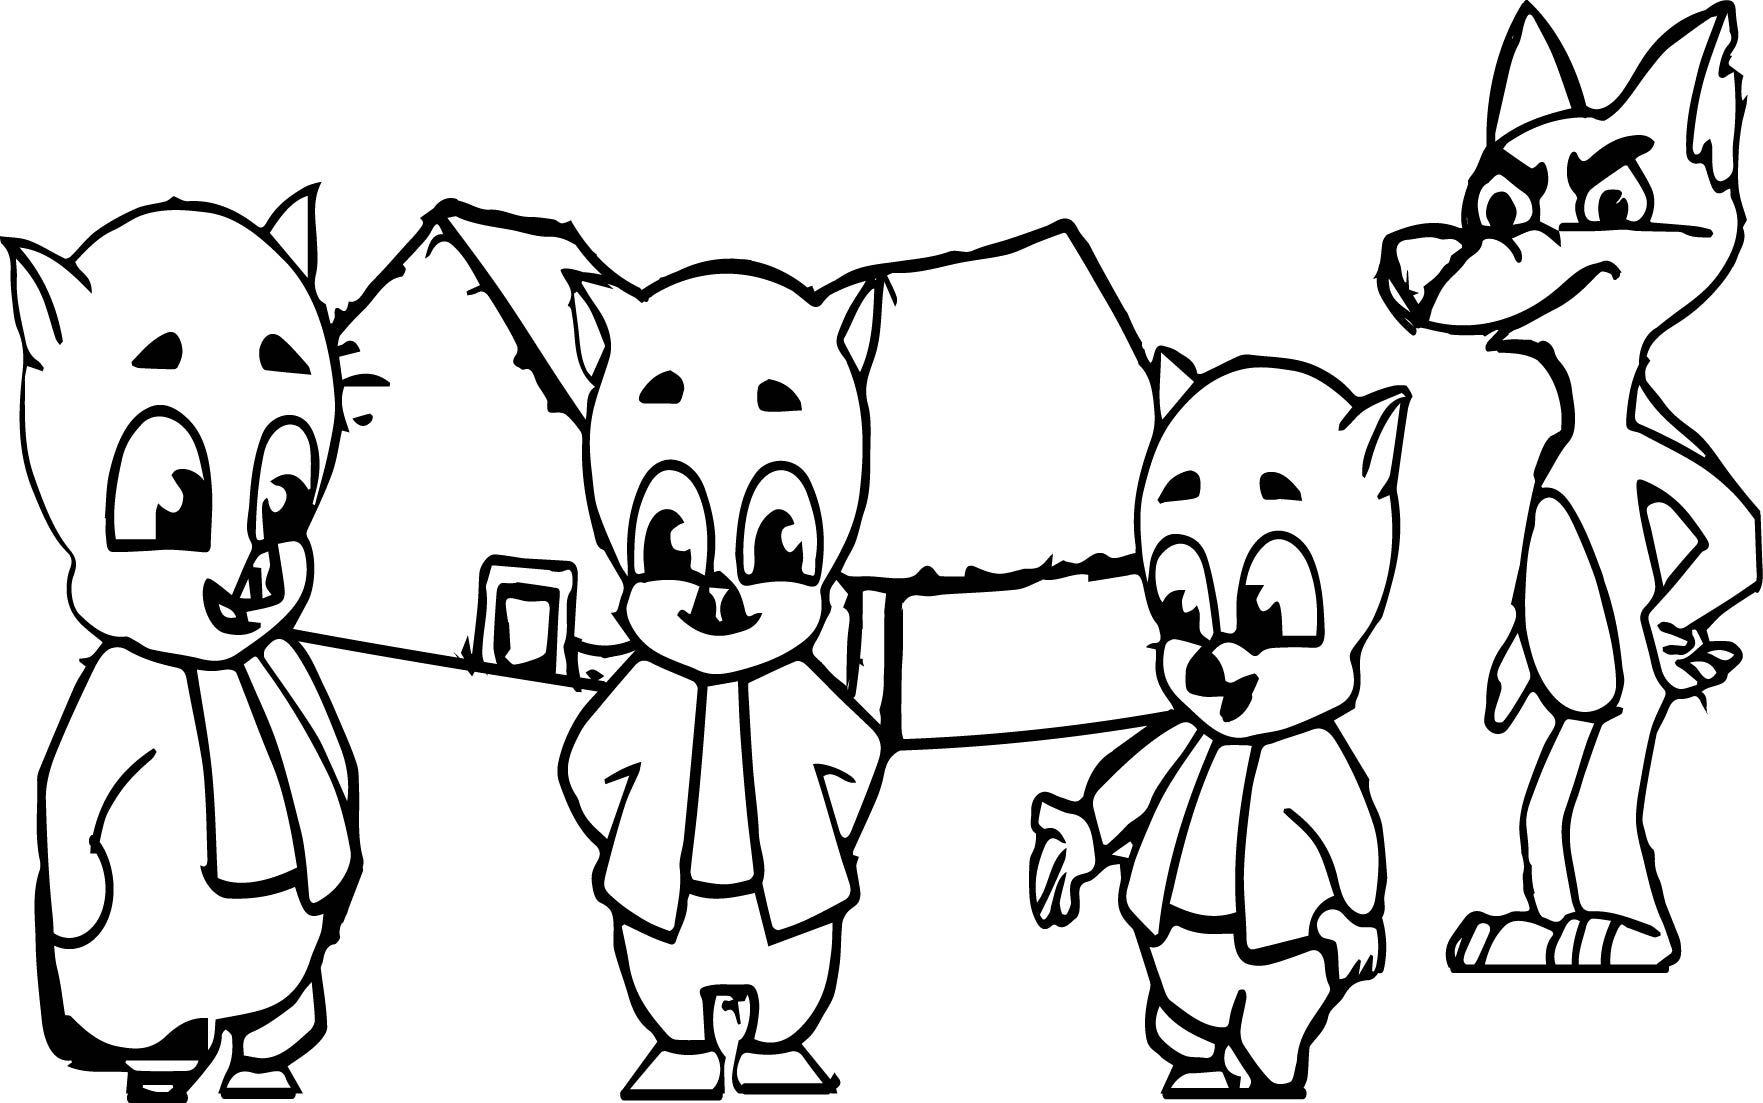 awesome 3 Little Pigs And The Big Bad Wolf Coloring Page